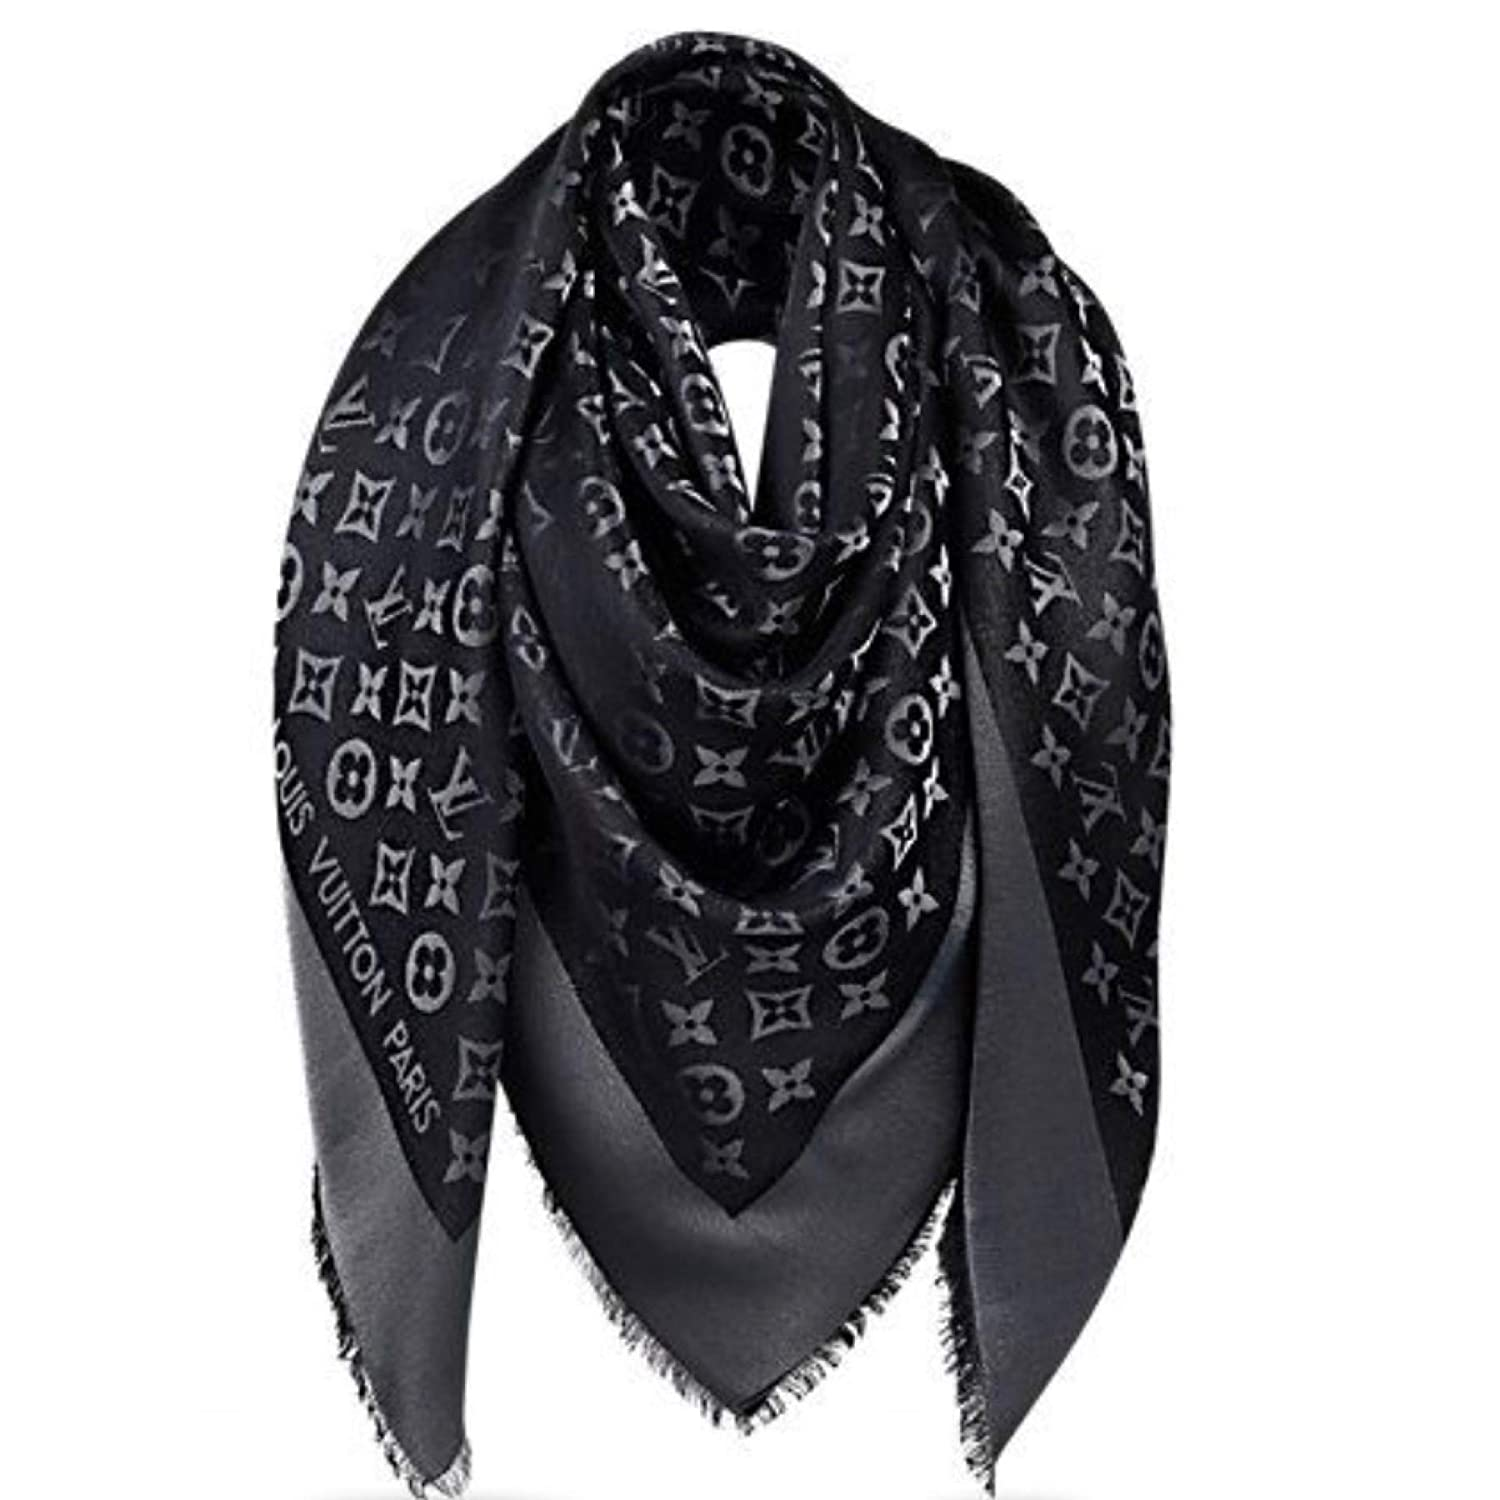 ddc7b552b308c Designer Inspired Monogram Denim Shawl in Black Scarf -Wrap Imitation  Designer Replica Luxurious High End Quality Fabric Fashion Accessory Large  ...